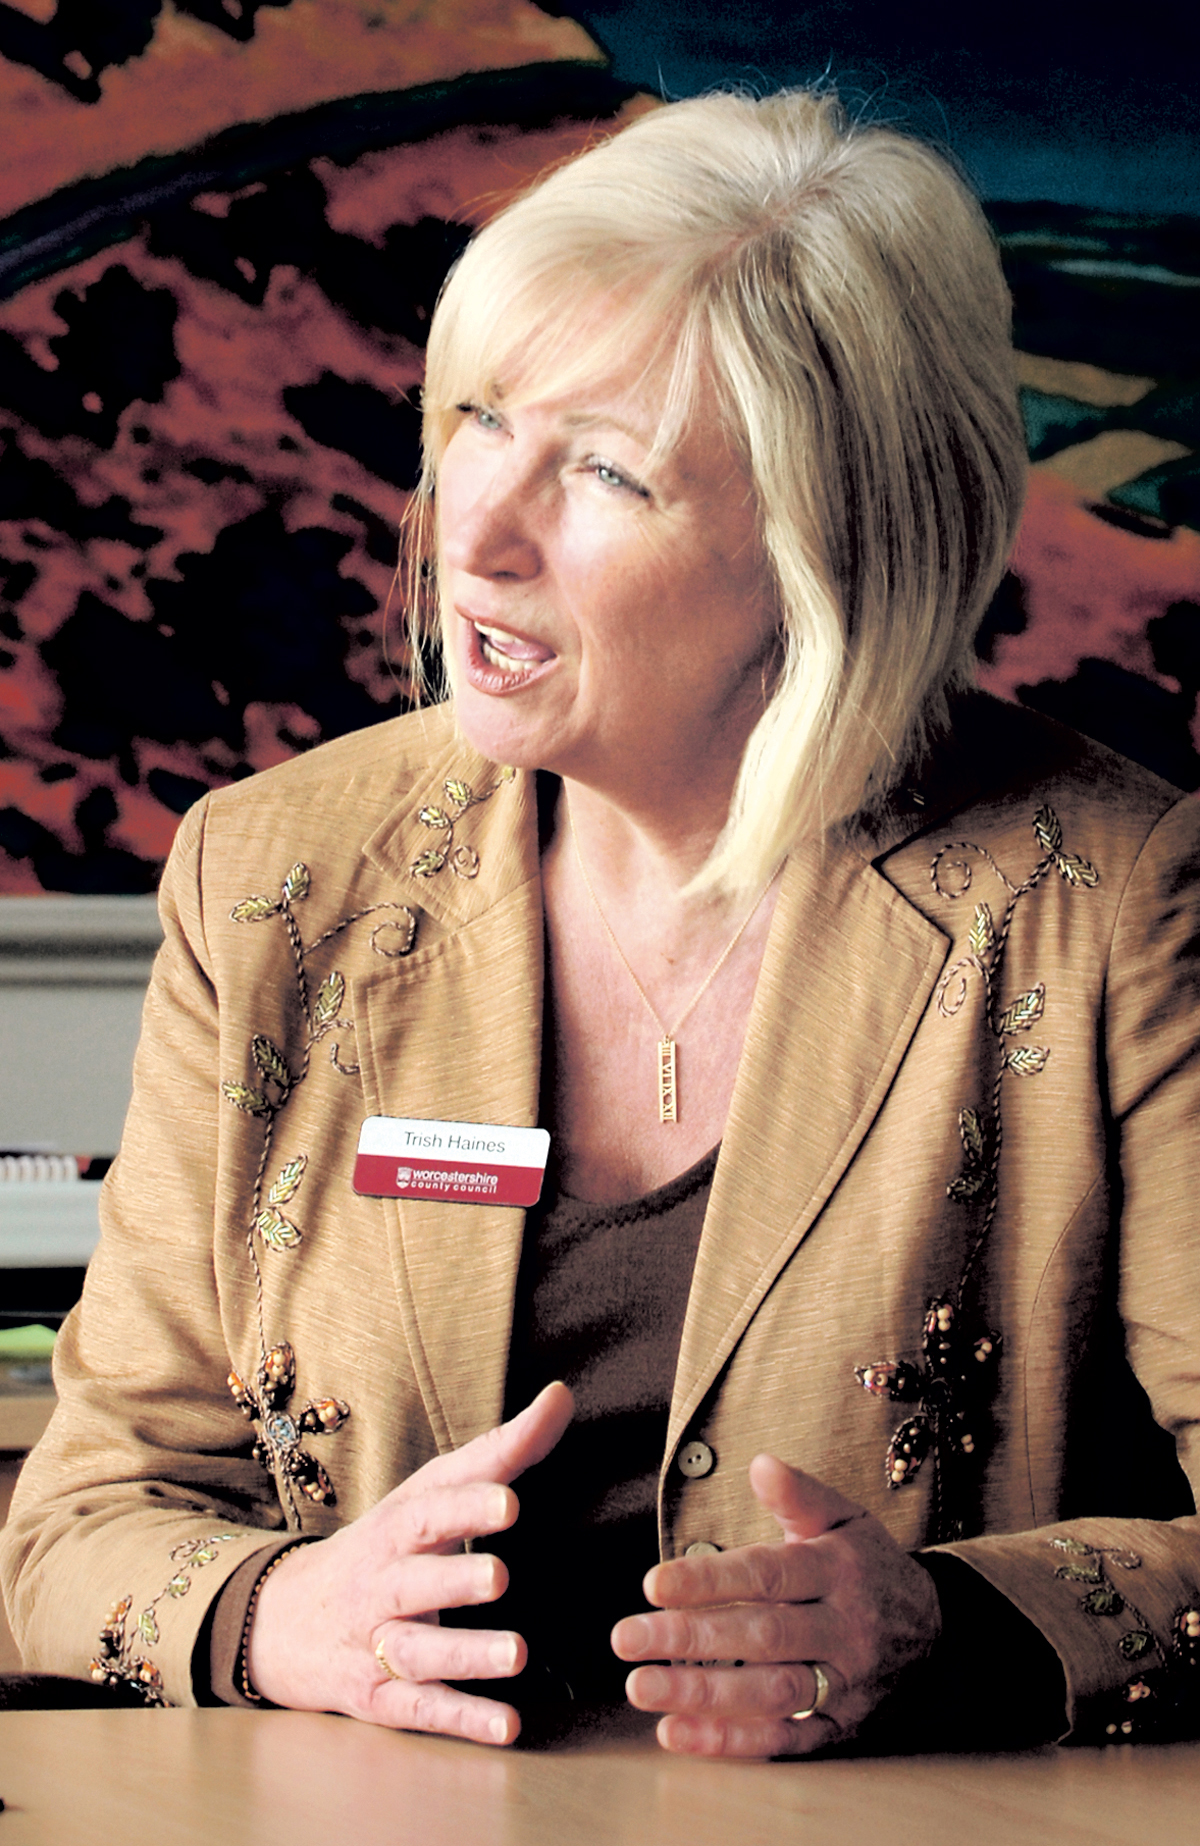 Trish Haines, the current county council chief executive